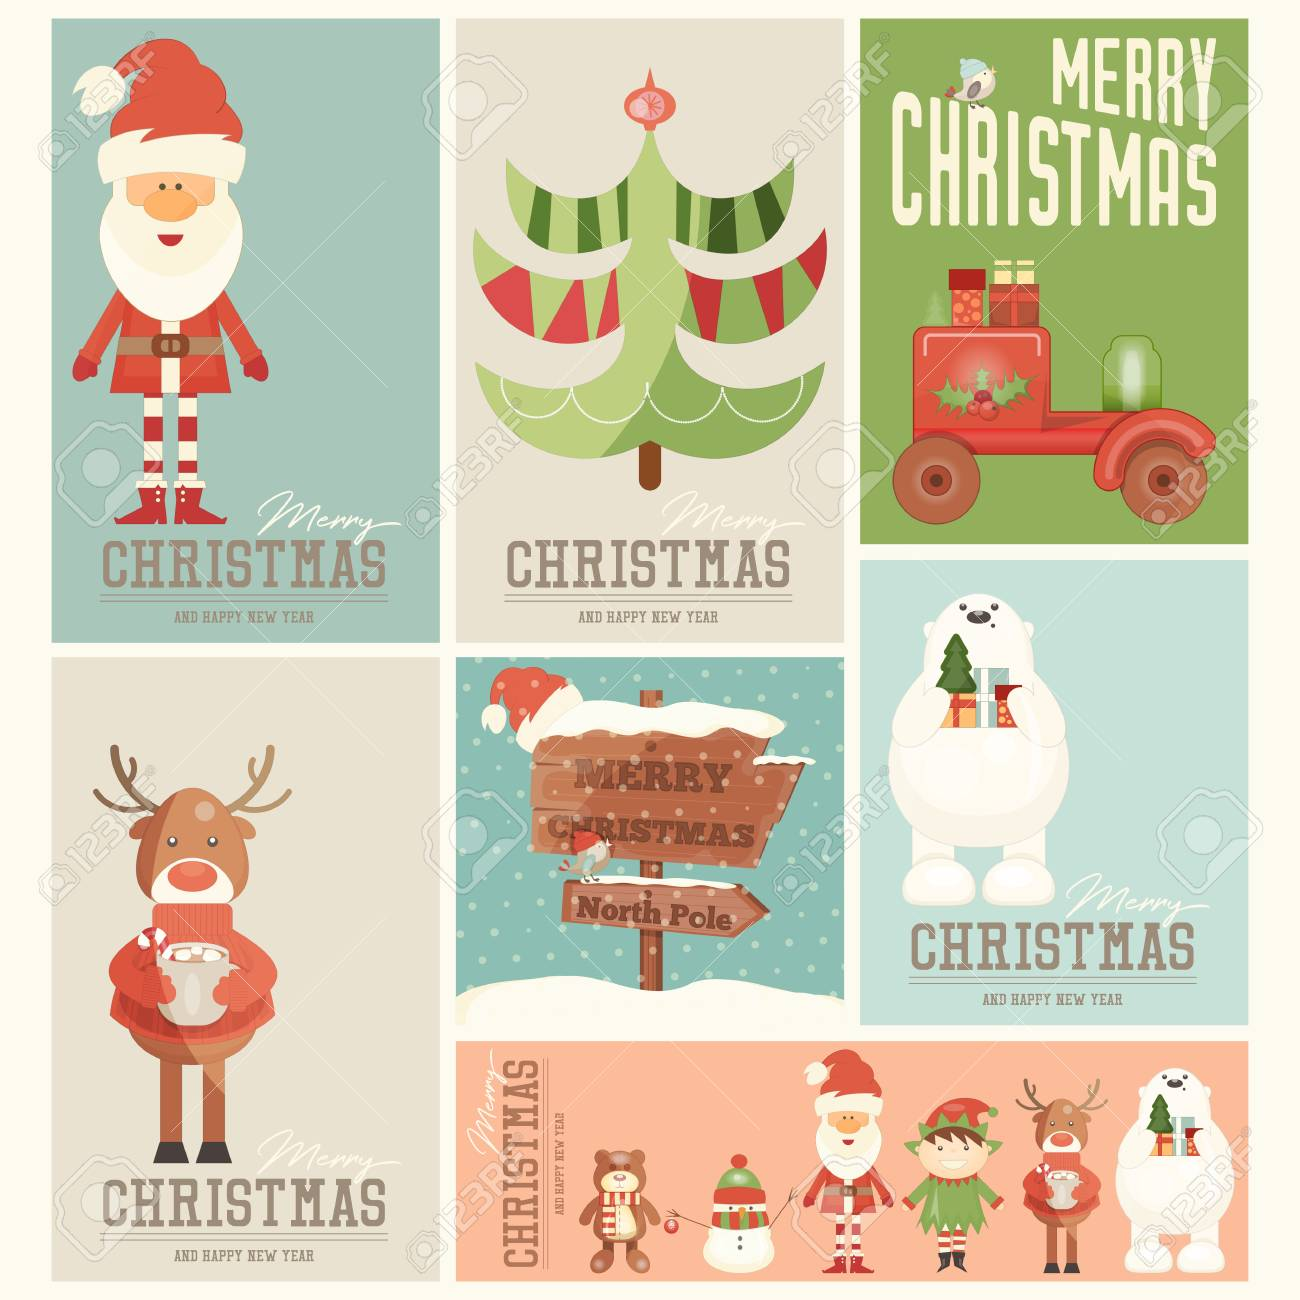 Christmas Posters.Merry Christmas Posters Set Santa Claus And Xmas Characters